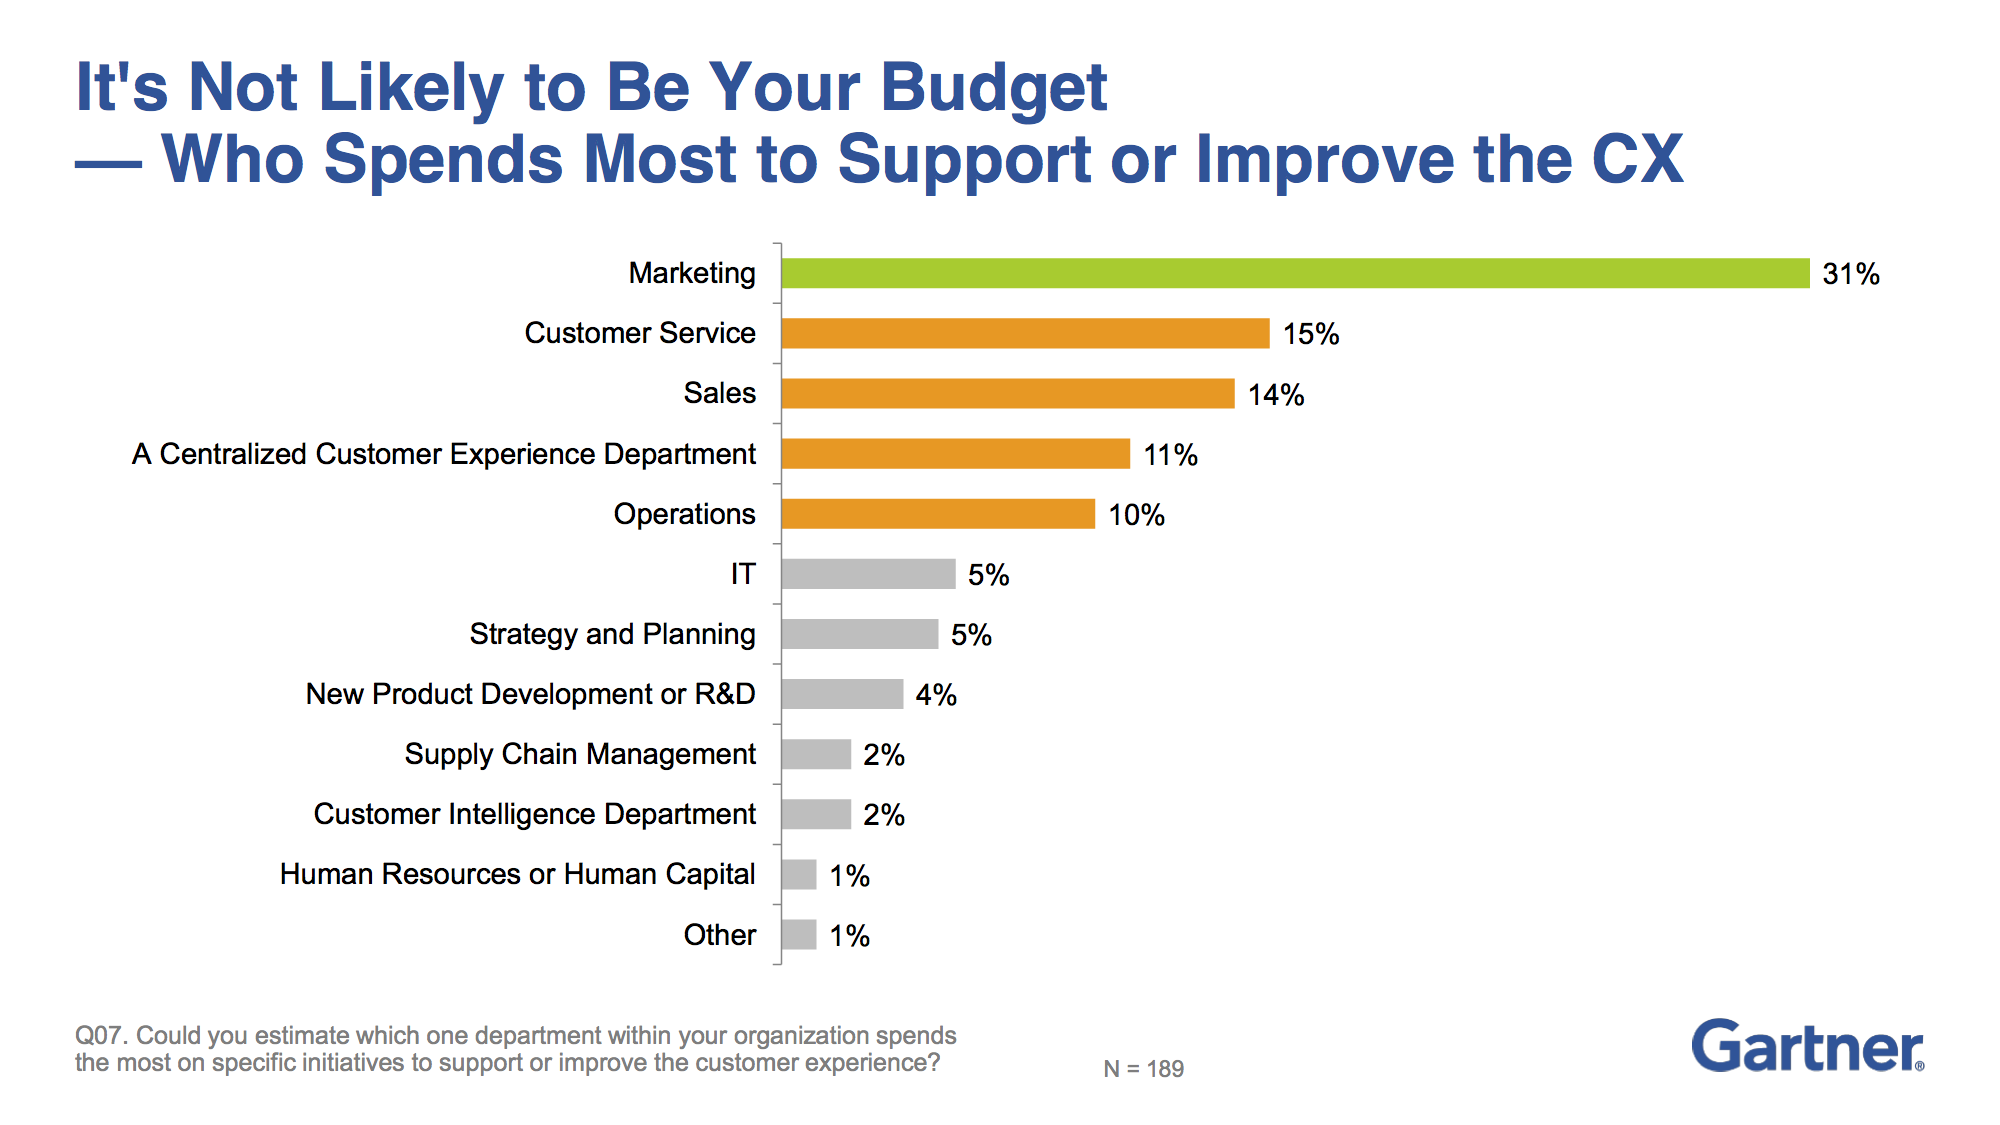 Marketing spends the most on customer experience